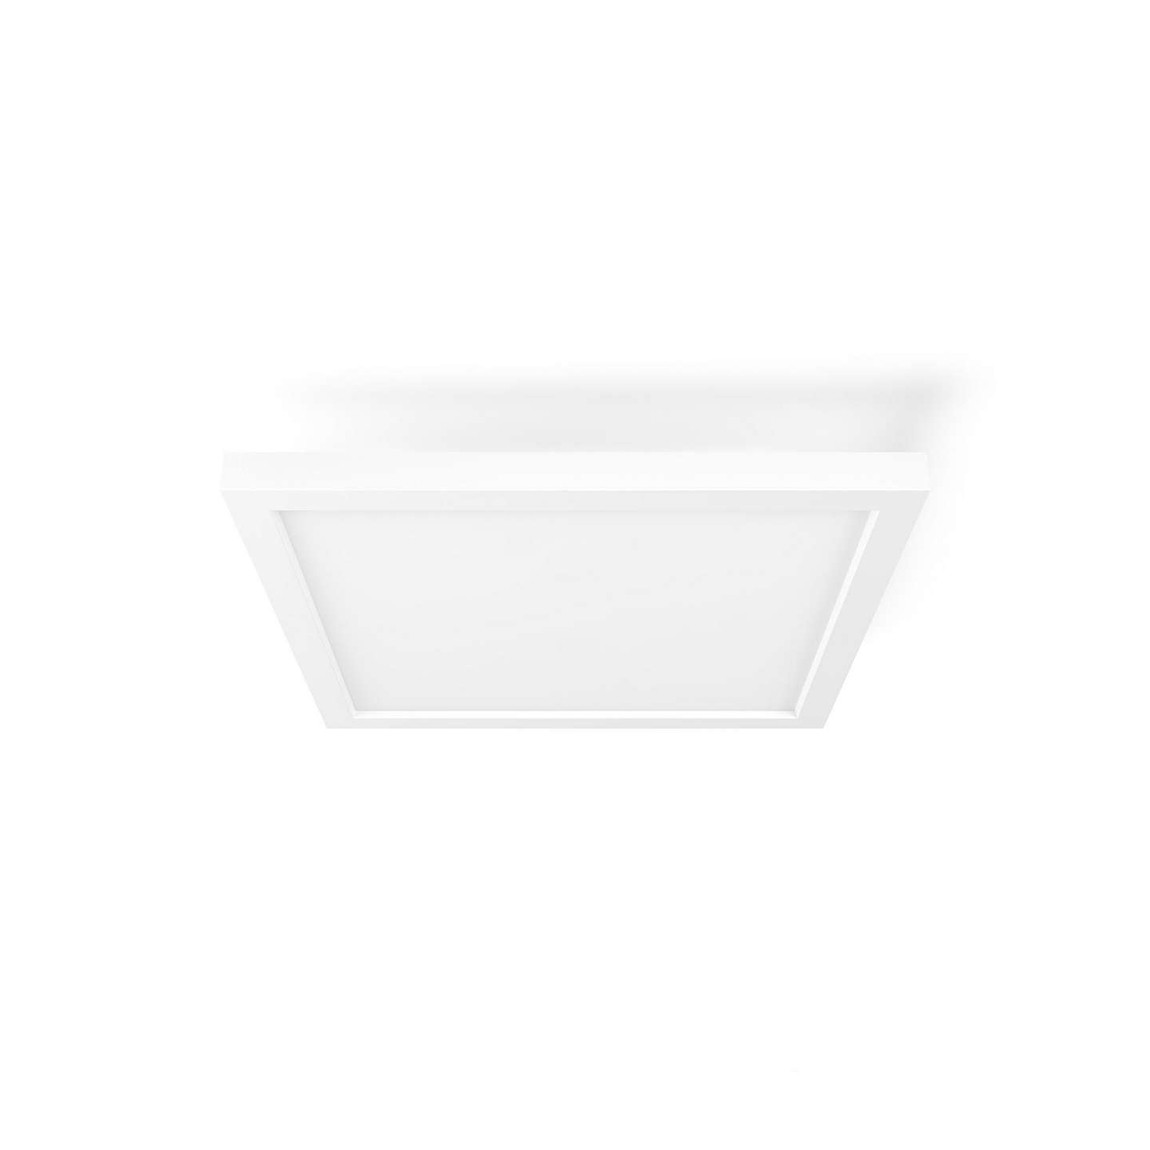 Philips Hue White Ambiance Aurelle LED-Panellampe 2200lm Dimmbar